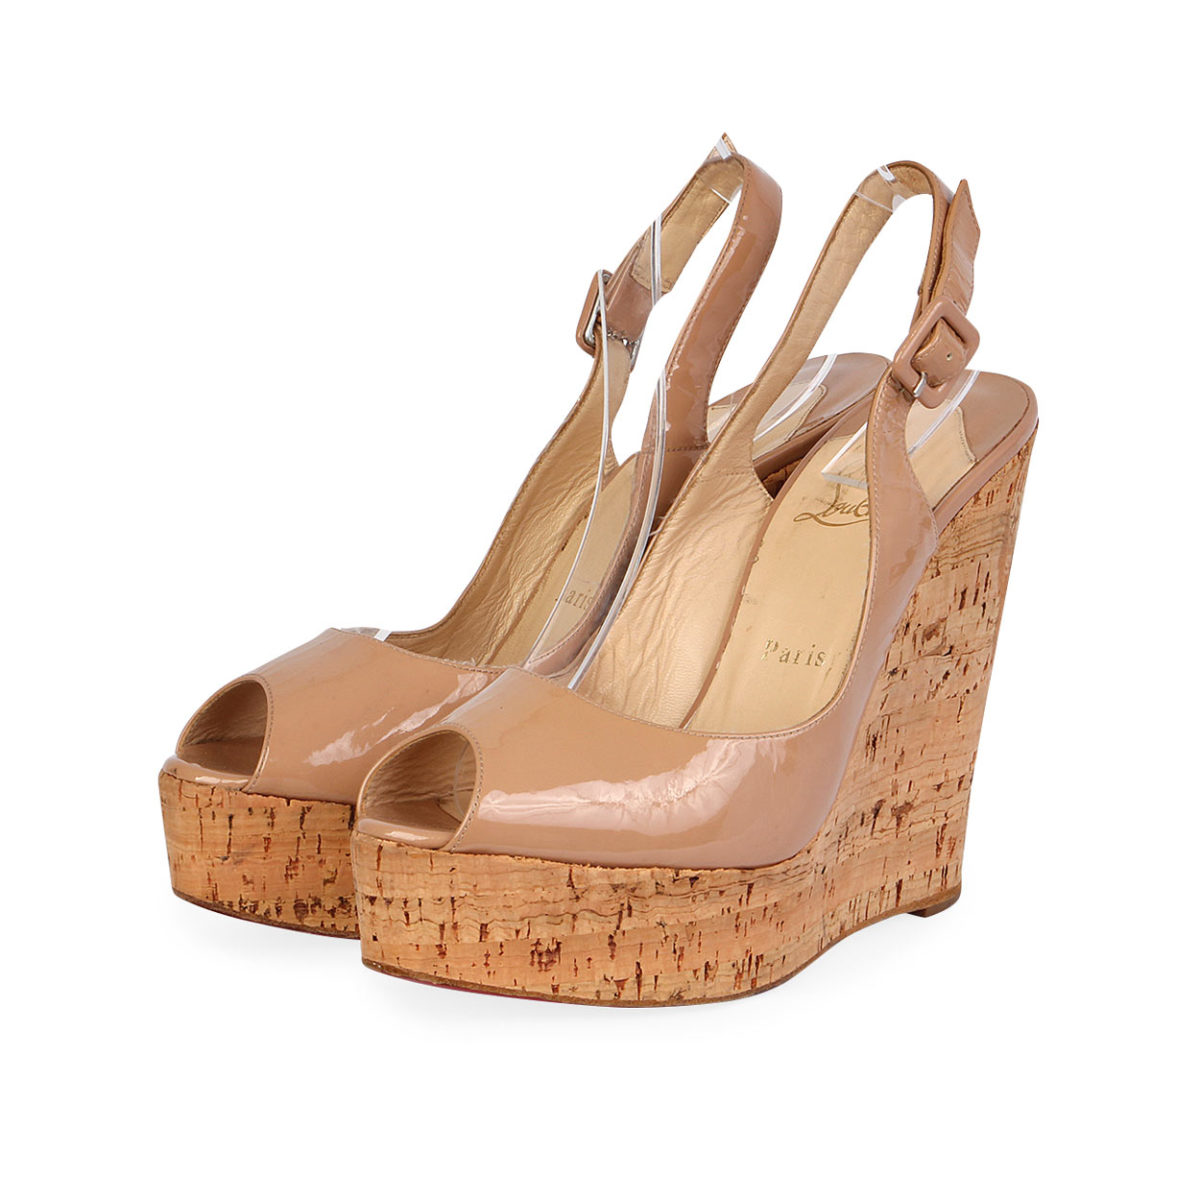 quality design a5a21 fe38b CHRISTIAN LOUBOUTIN Patent Slingback Wedges Nude - S: 40 (6.5)